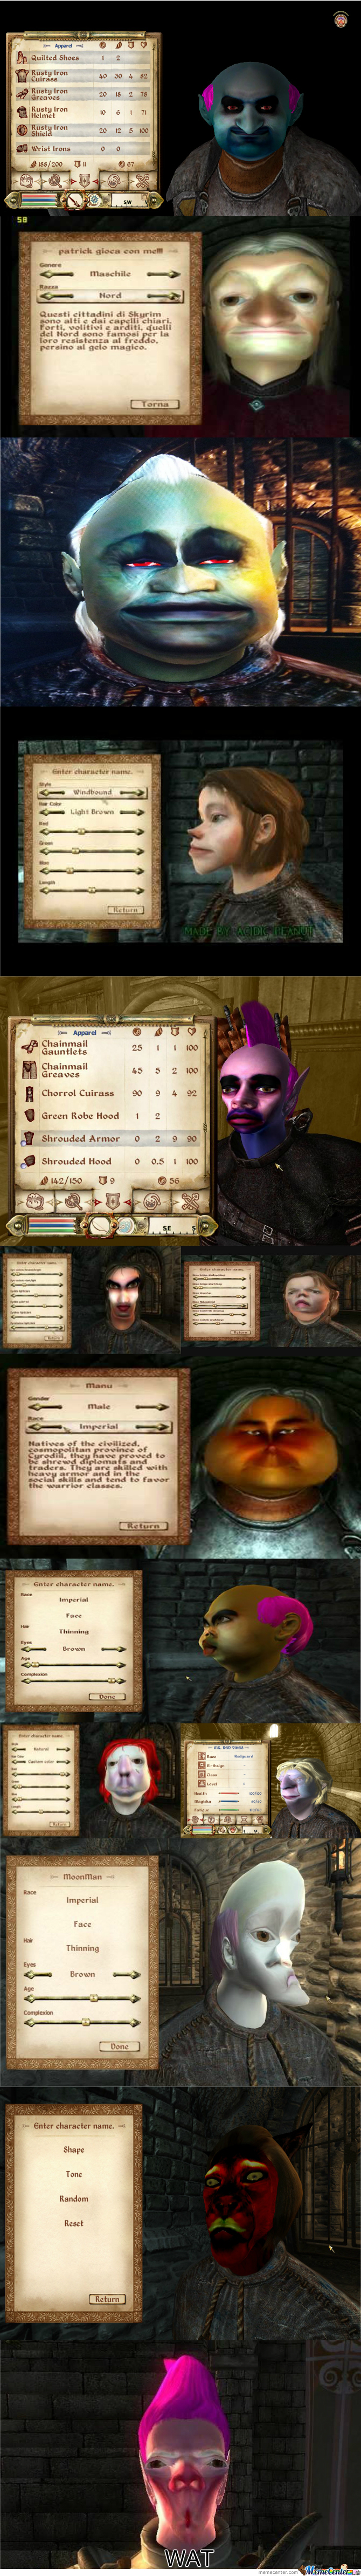 Oblivion Character Creation Gone Wrong